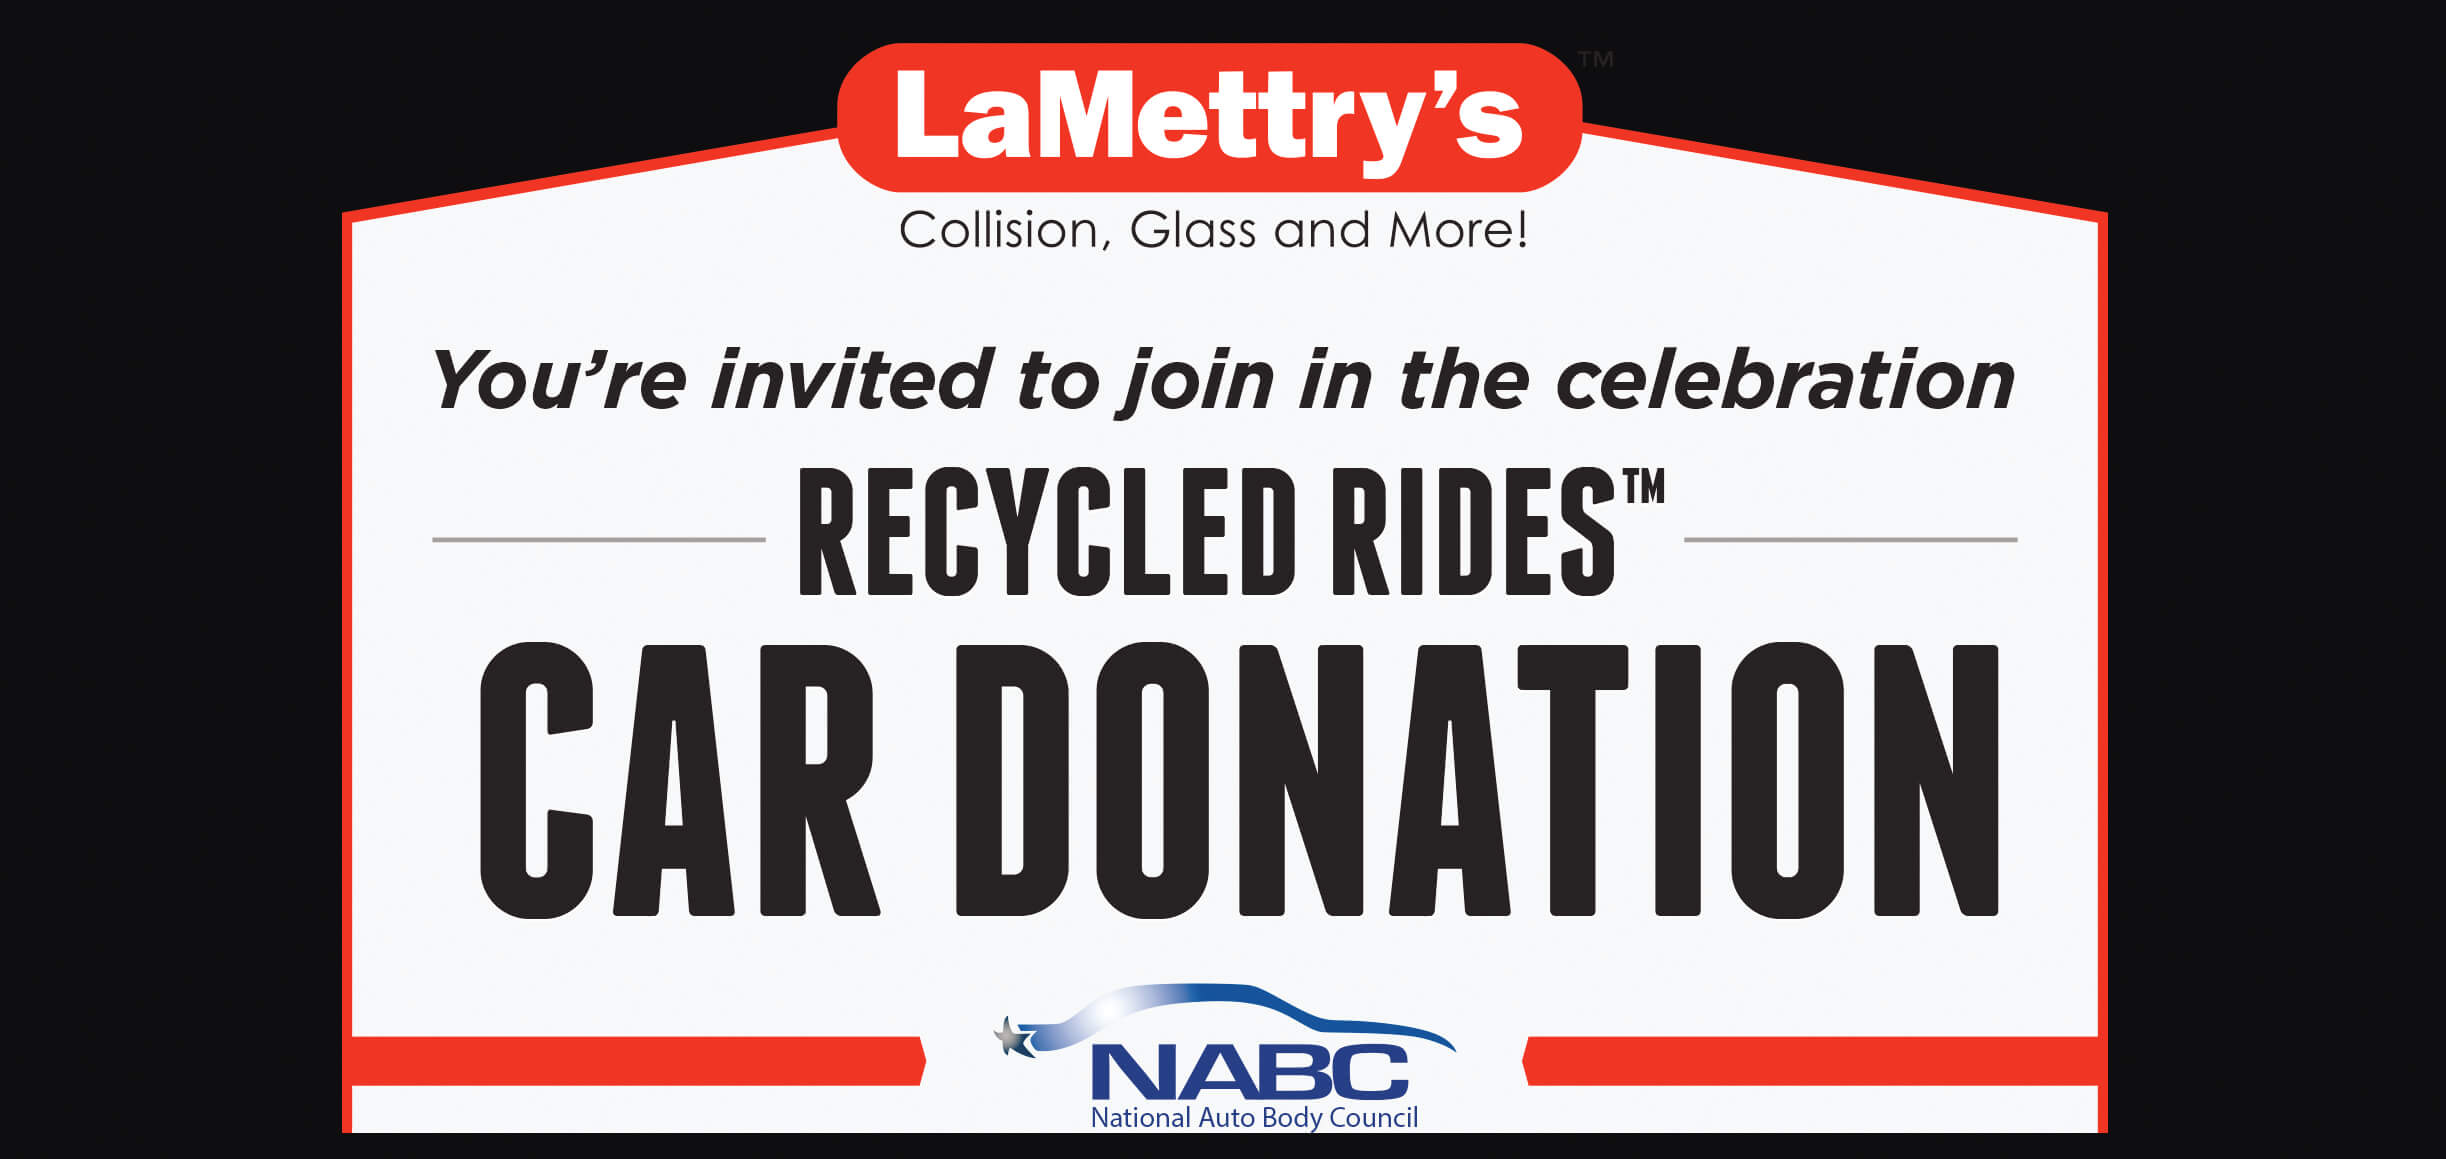 LeMettry's Recycled Rides Car Donation